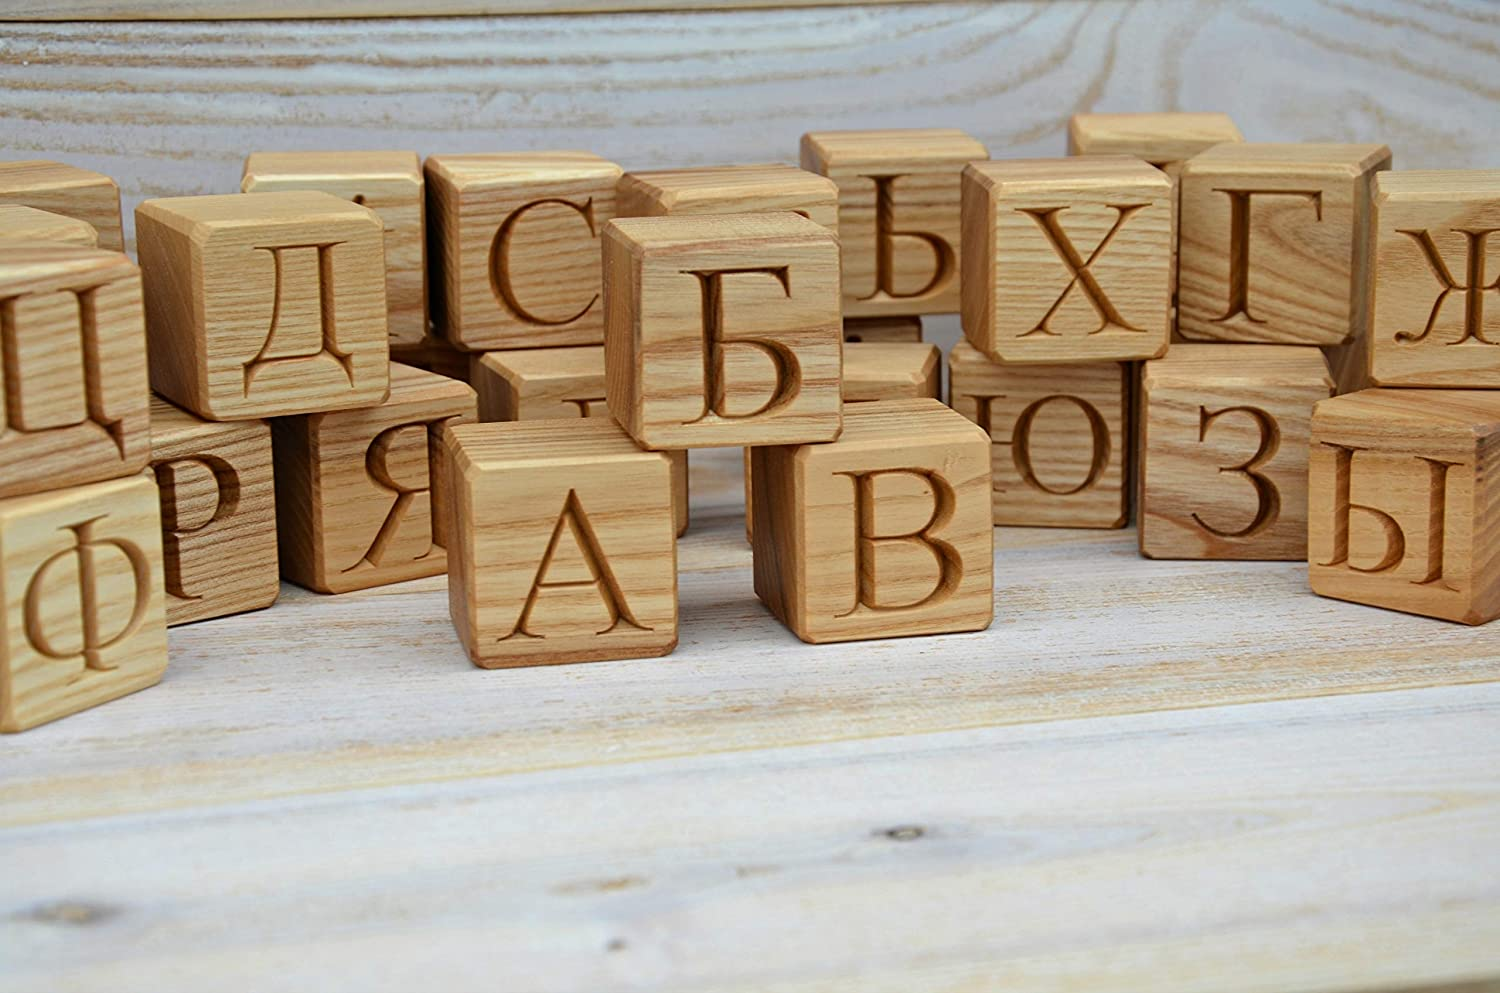 ABC Wood Block Learning Wood Toy Back To School Gift Christmas Gift 33 Russian Alphabet Wood Blocks Personalized Letter Blocks Baby Shower Gift